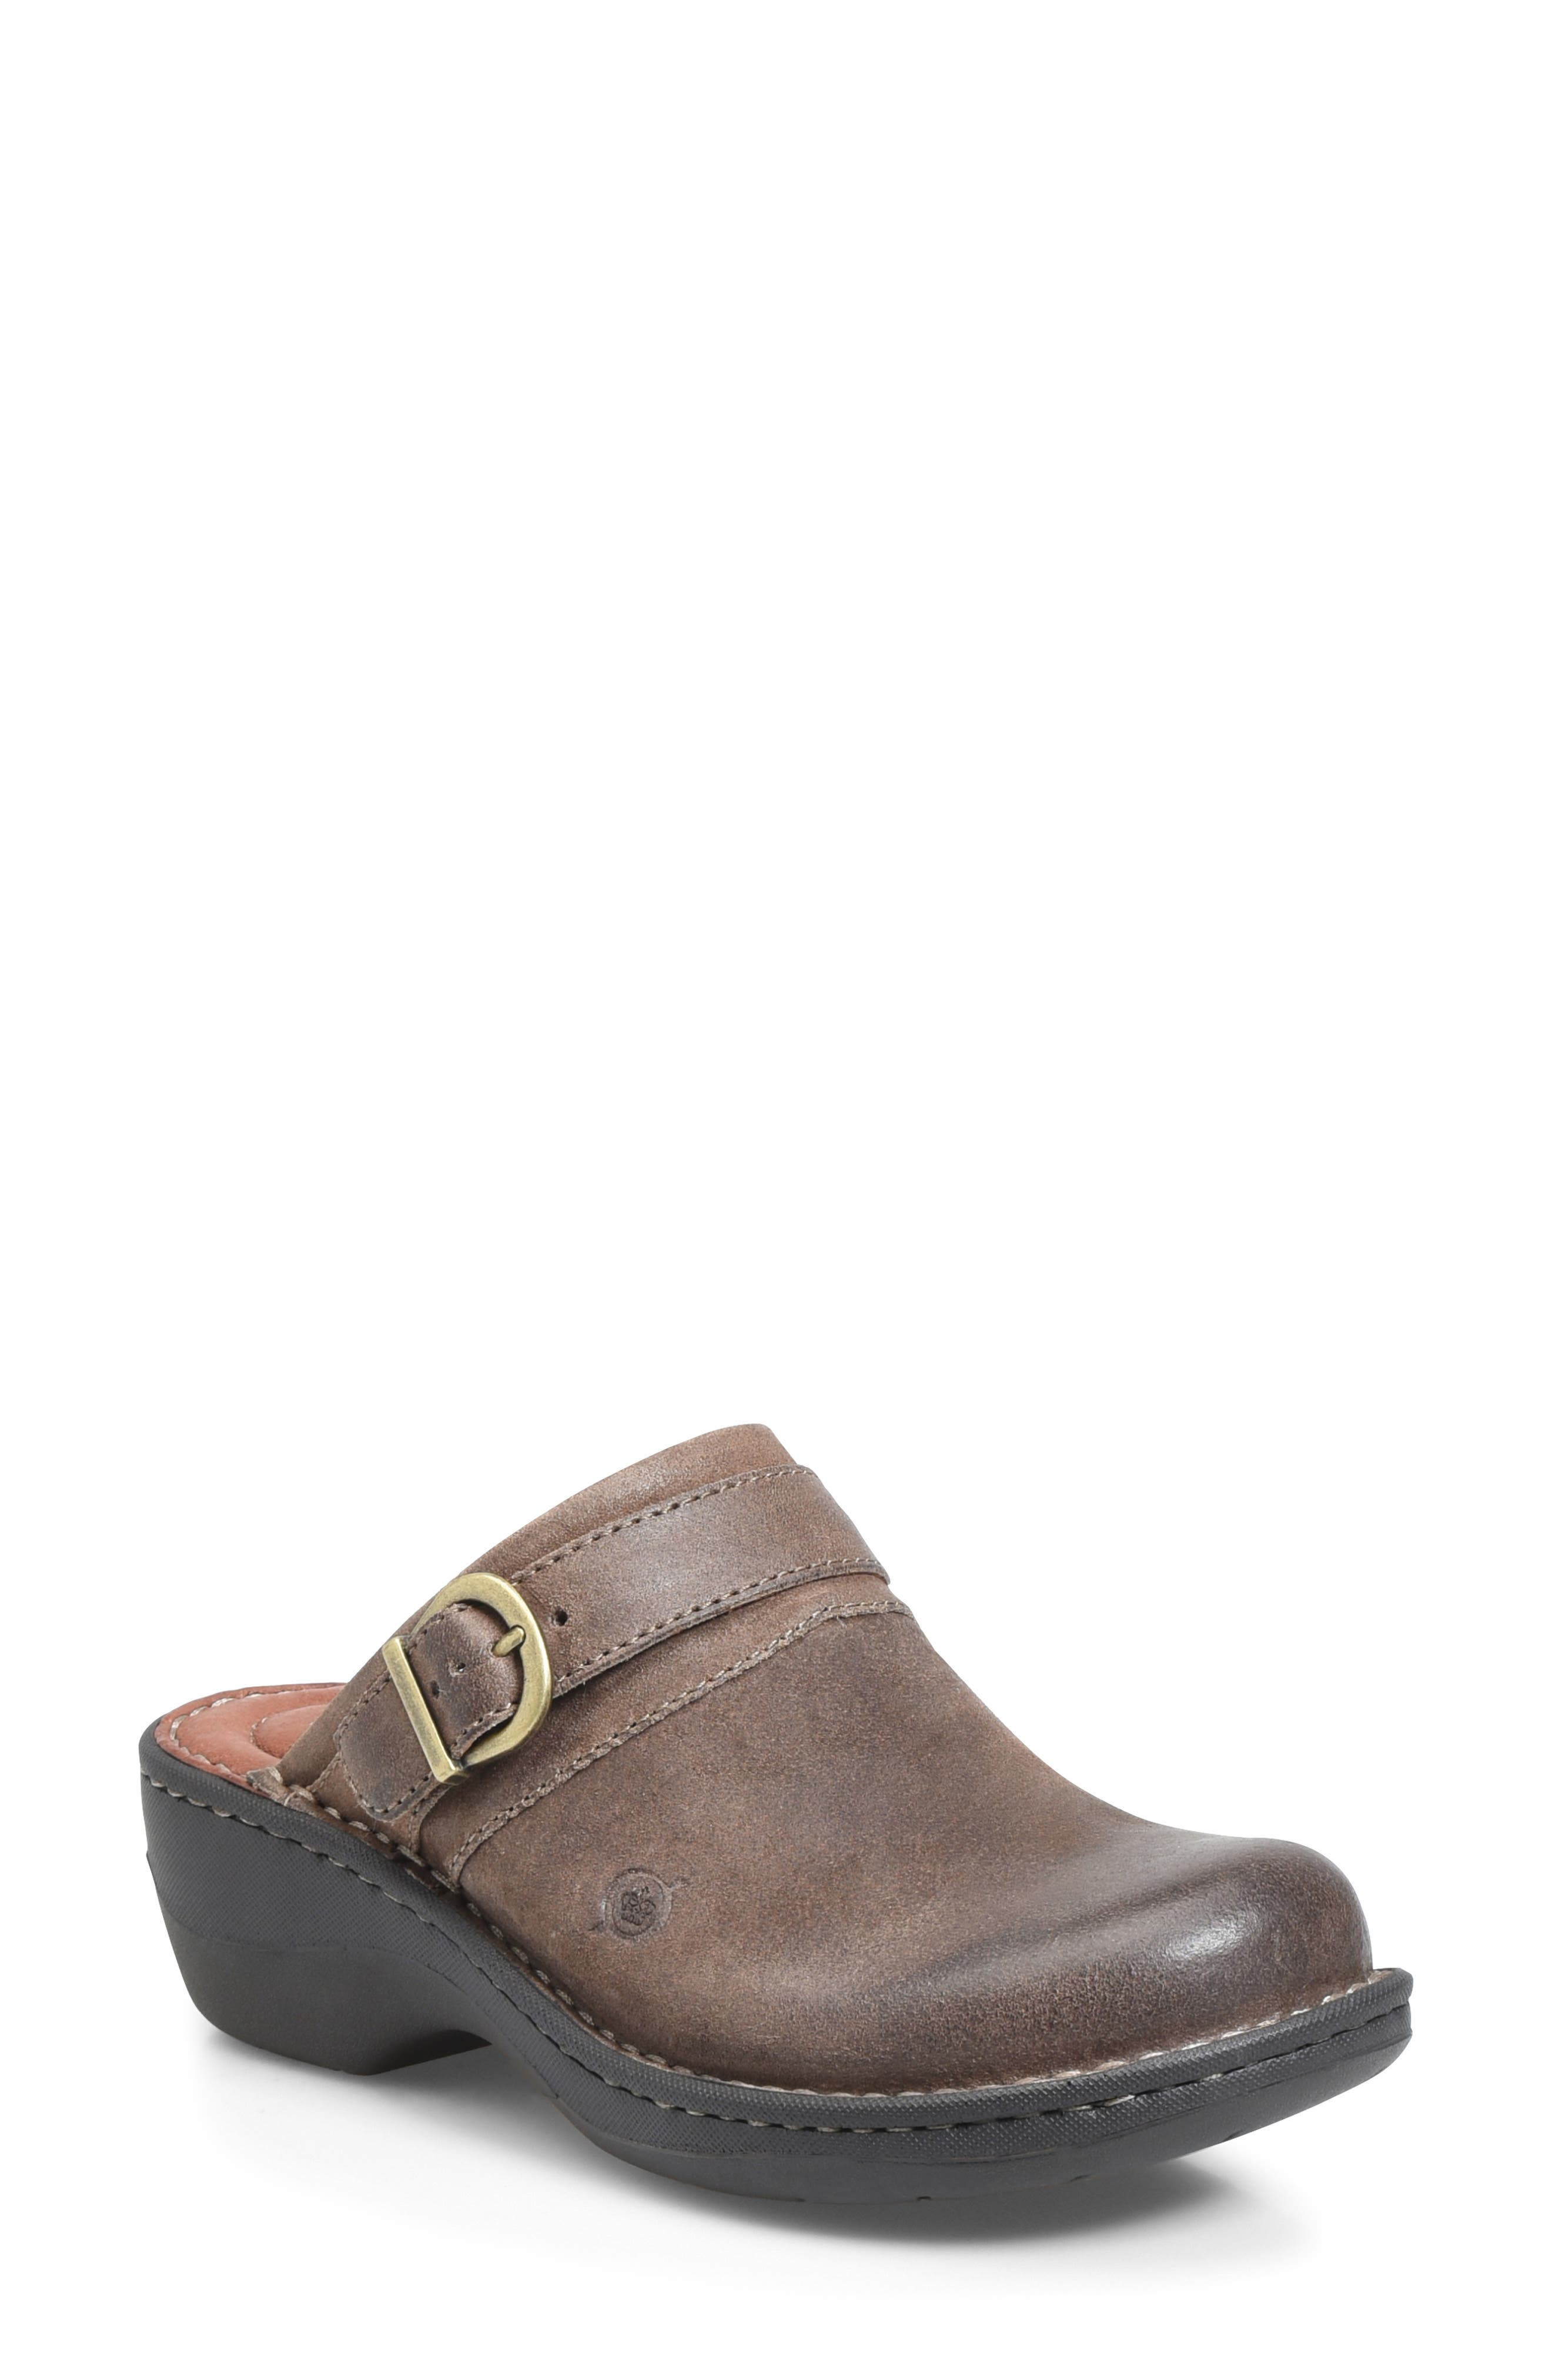 BØRN Avoca Clog, Main, color, TAUPE DISTRESSED LEATHER